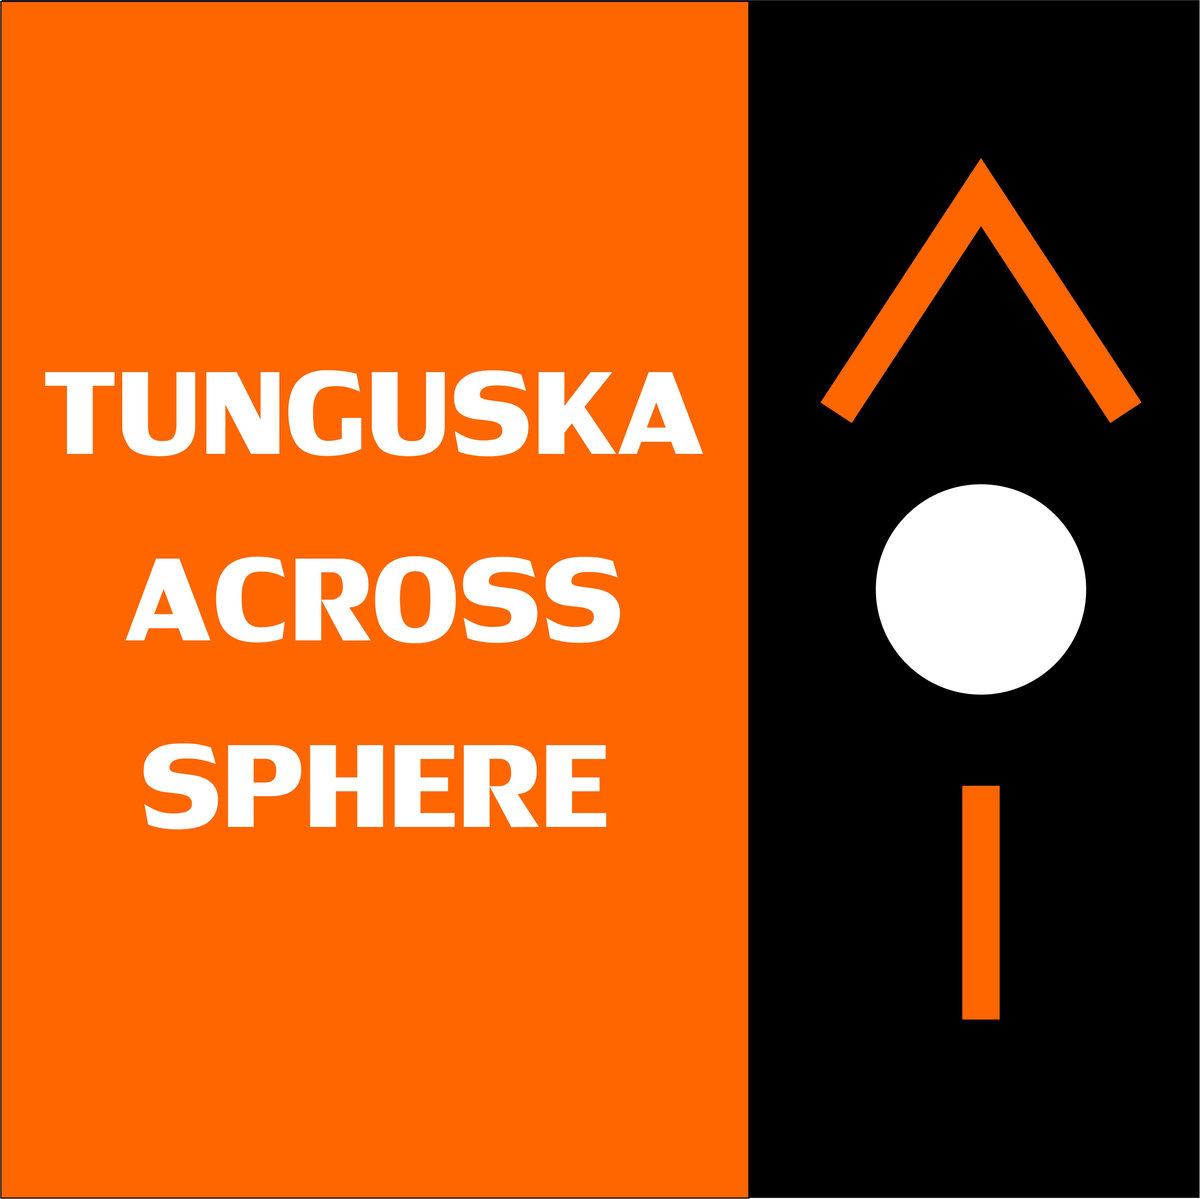 Ellipsis III - Tunguska.Across.Sphere. Vol.3 @ 'Ellipsis III - Tunguska.Across.Sphere. Vol.3' album (electronic, ambient)